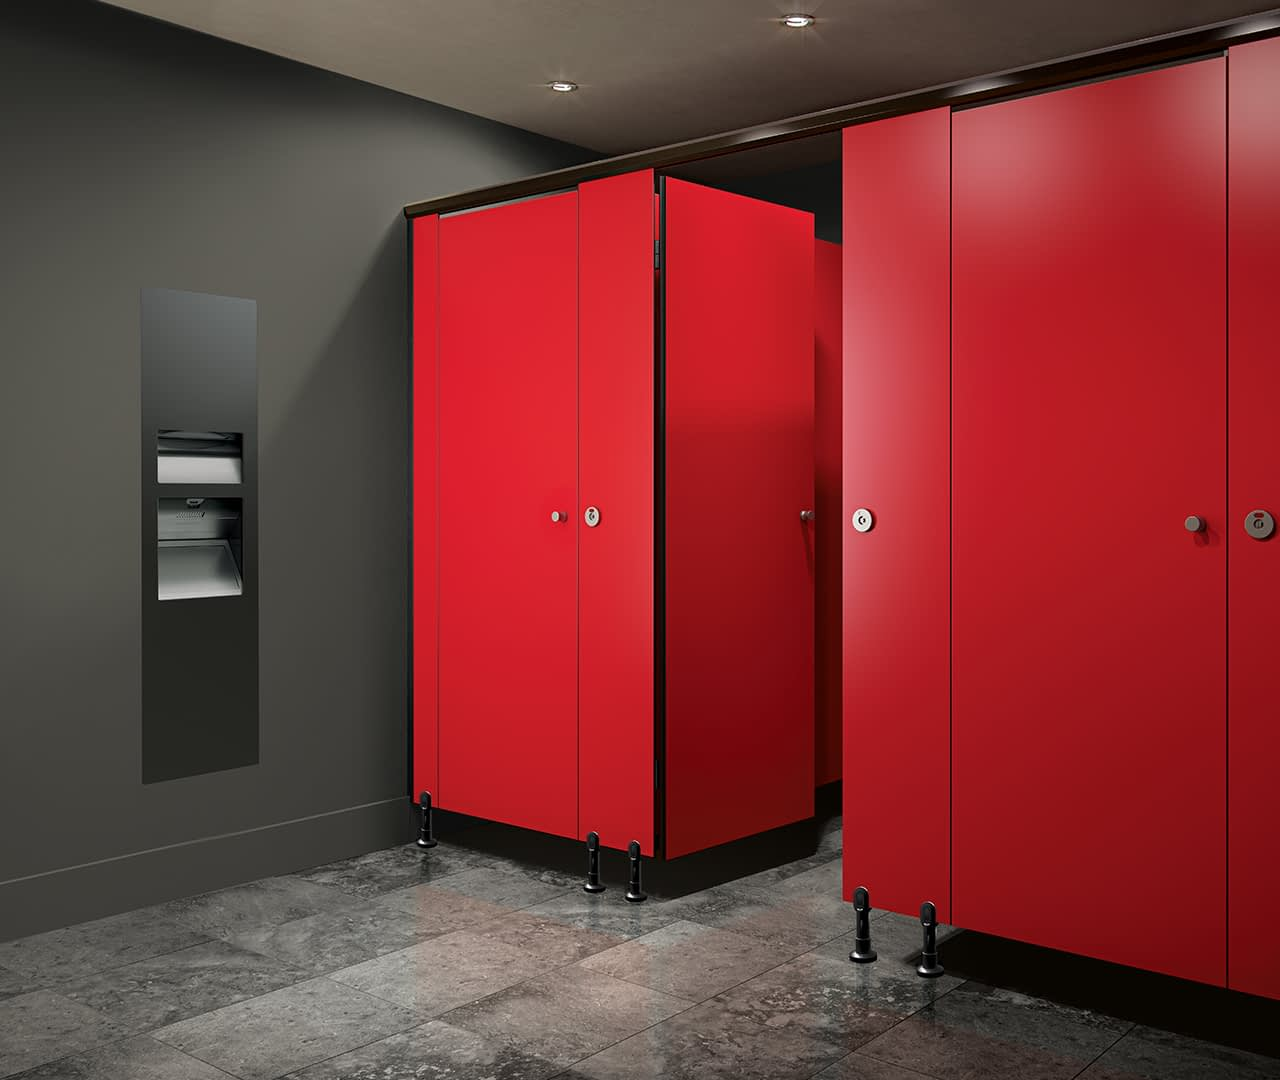 Classic cubicle bathroom partitions